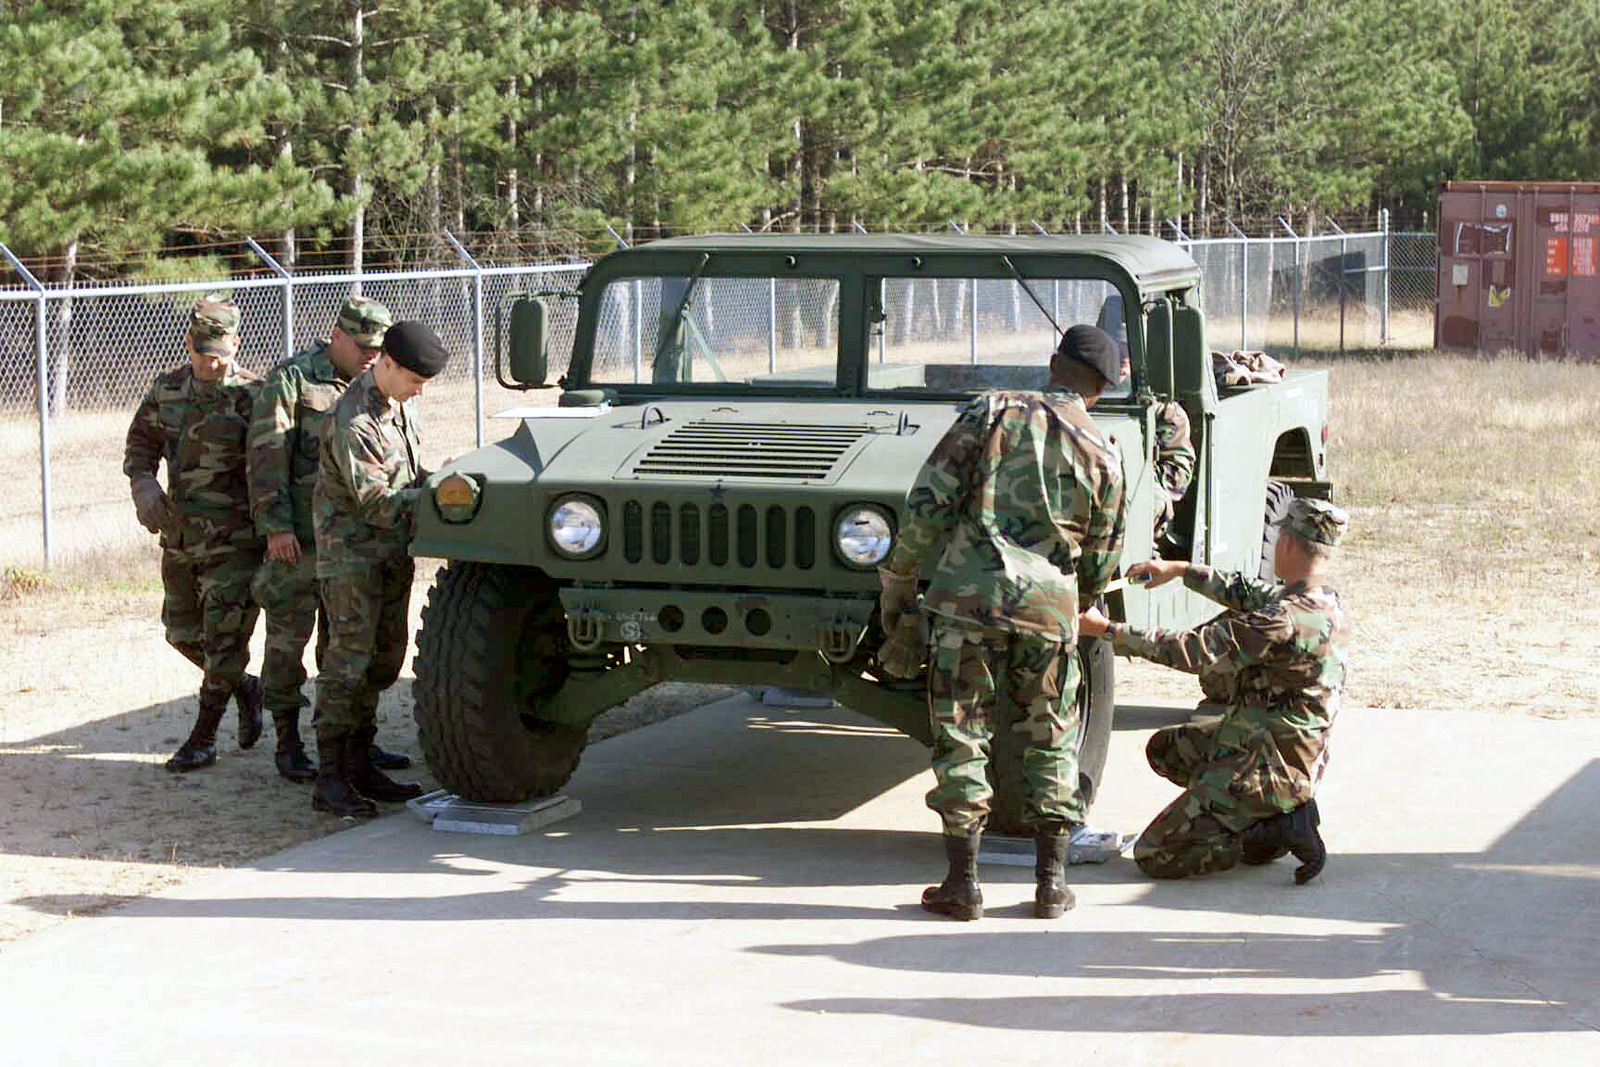 US Army Reserve Readiness Training Center (ARRTC) students